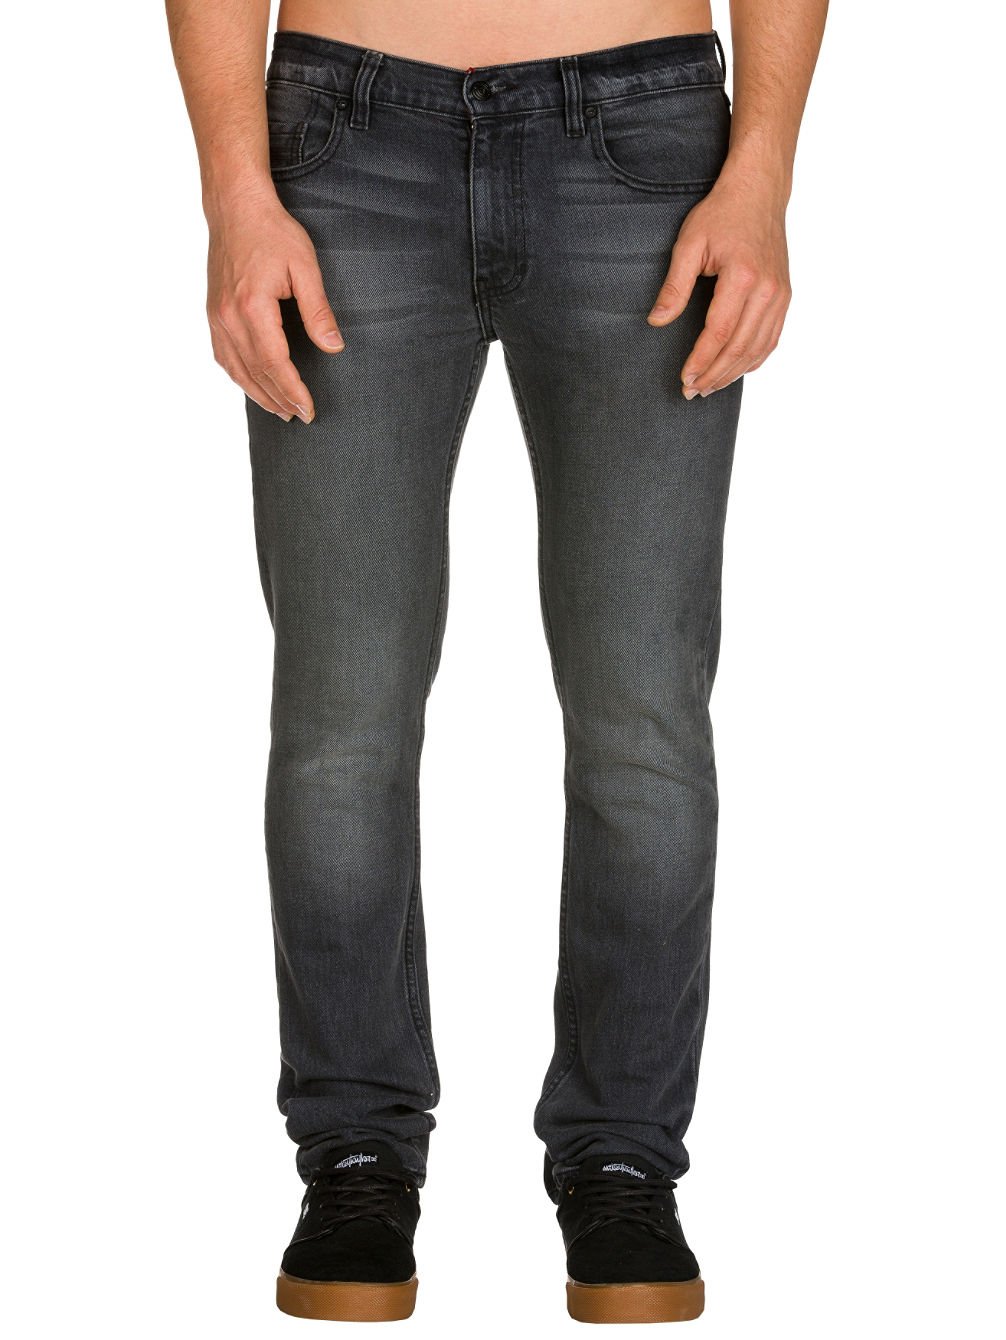 Boomer Jeans